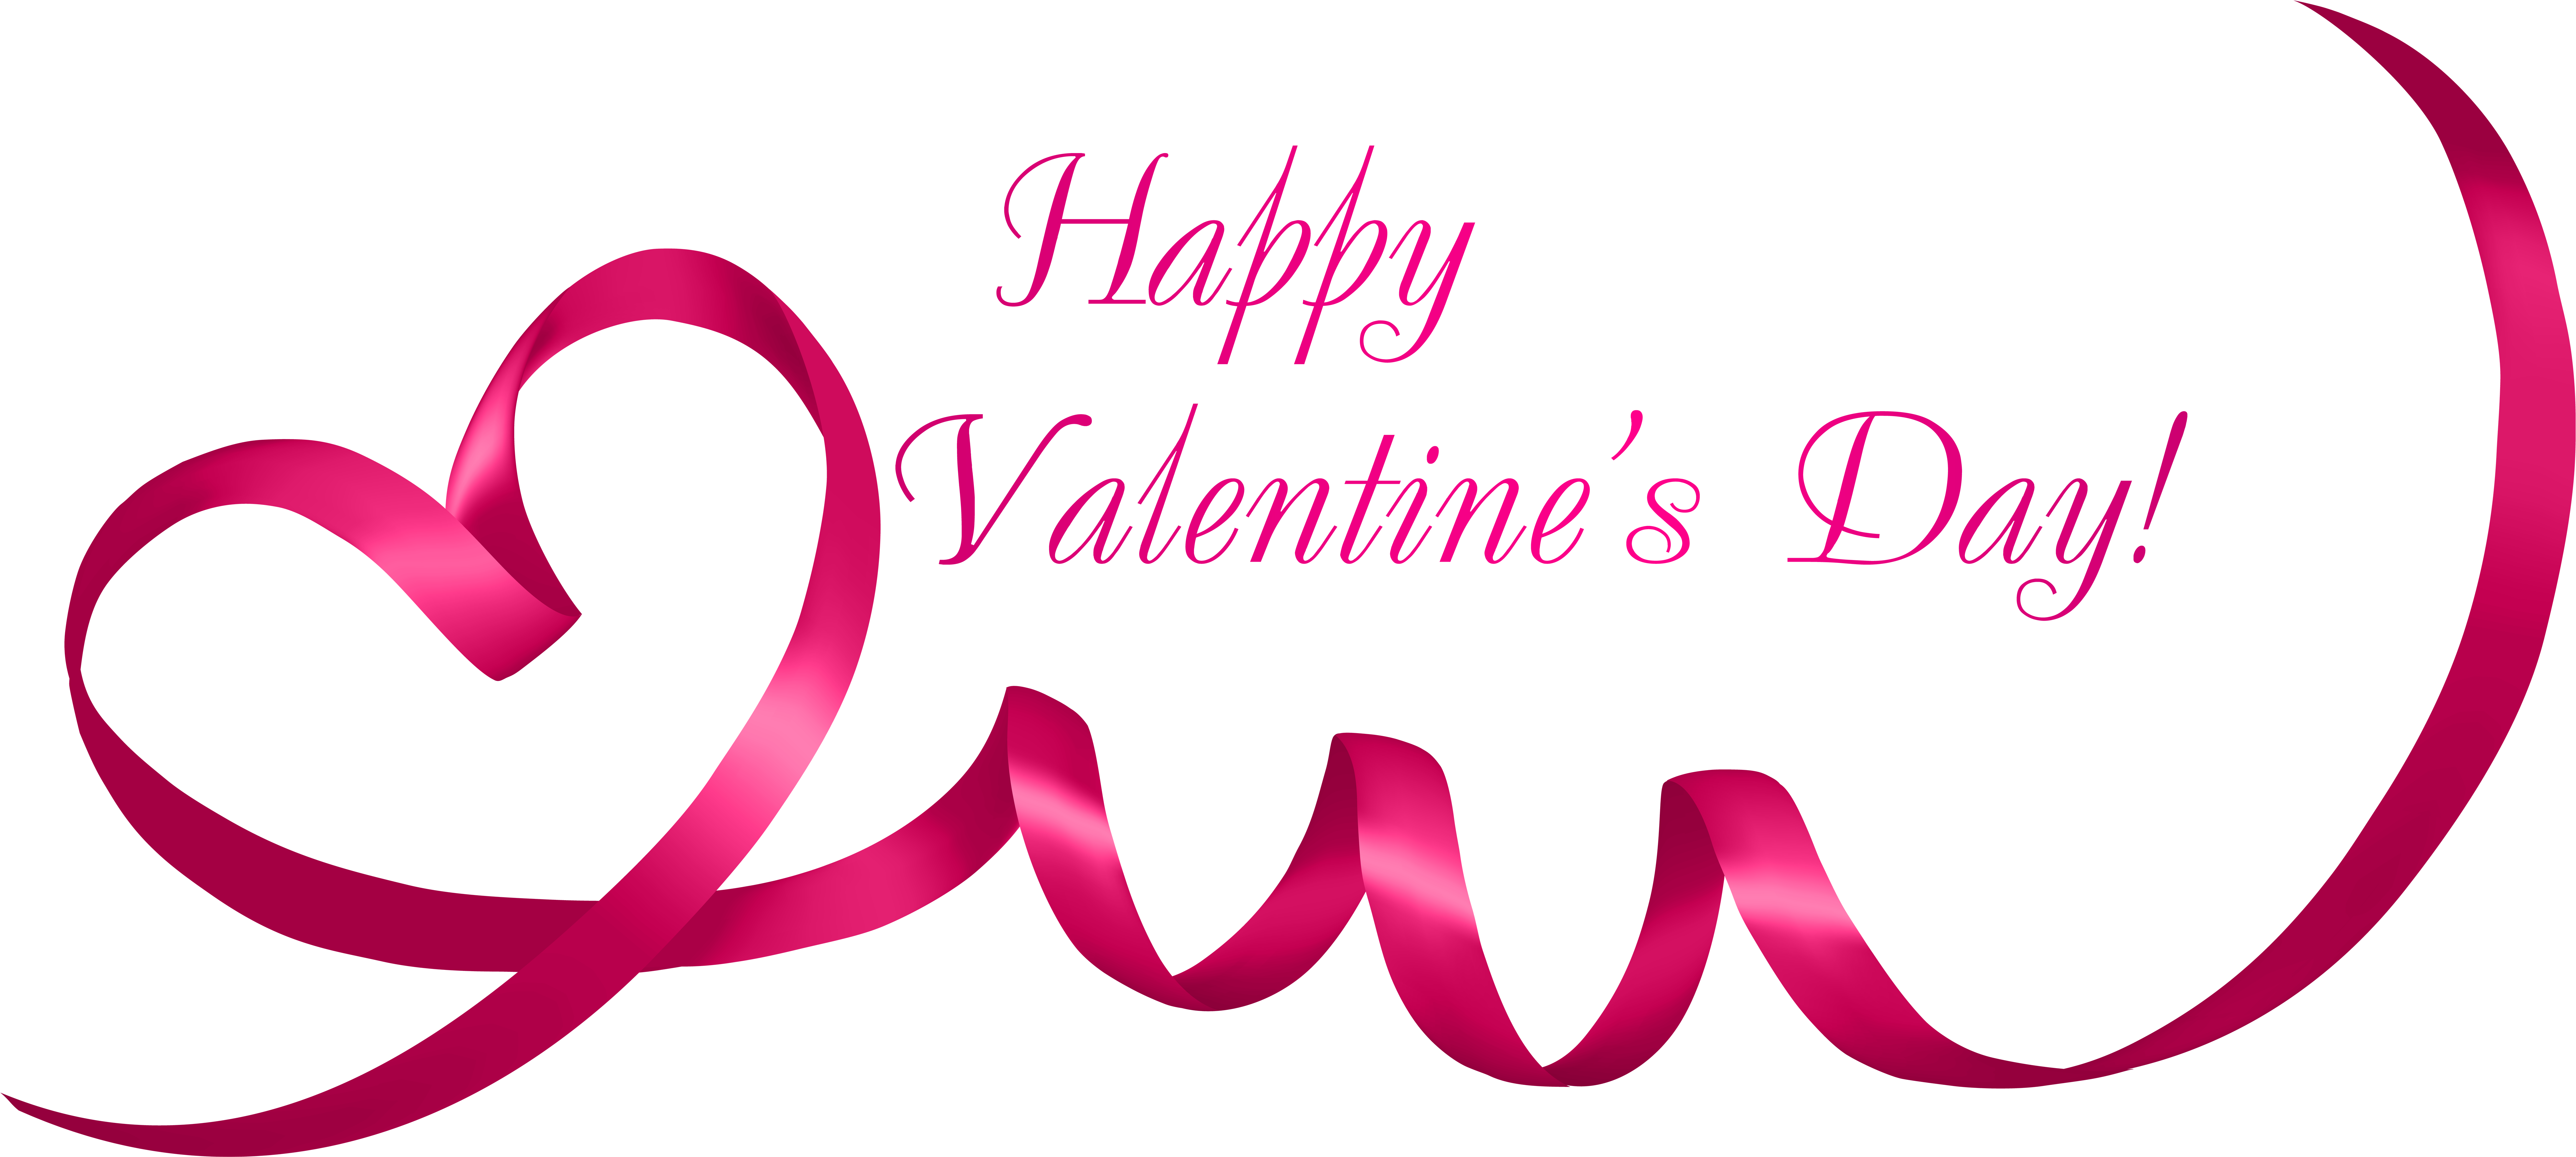 Happy Valentines Day Images With Rose Clipart - Full Size ...